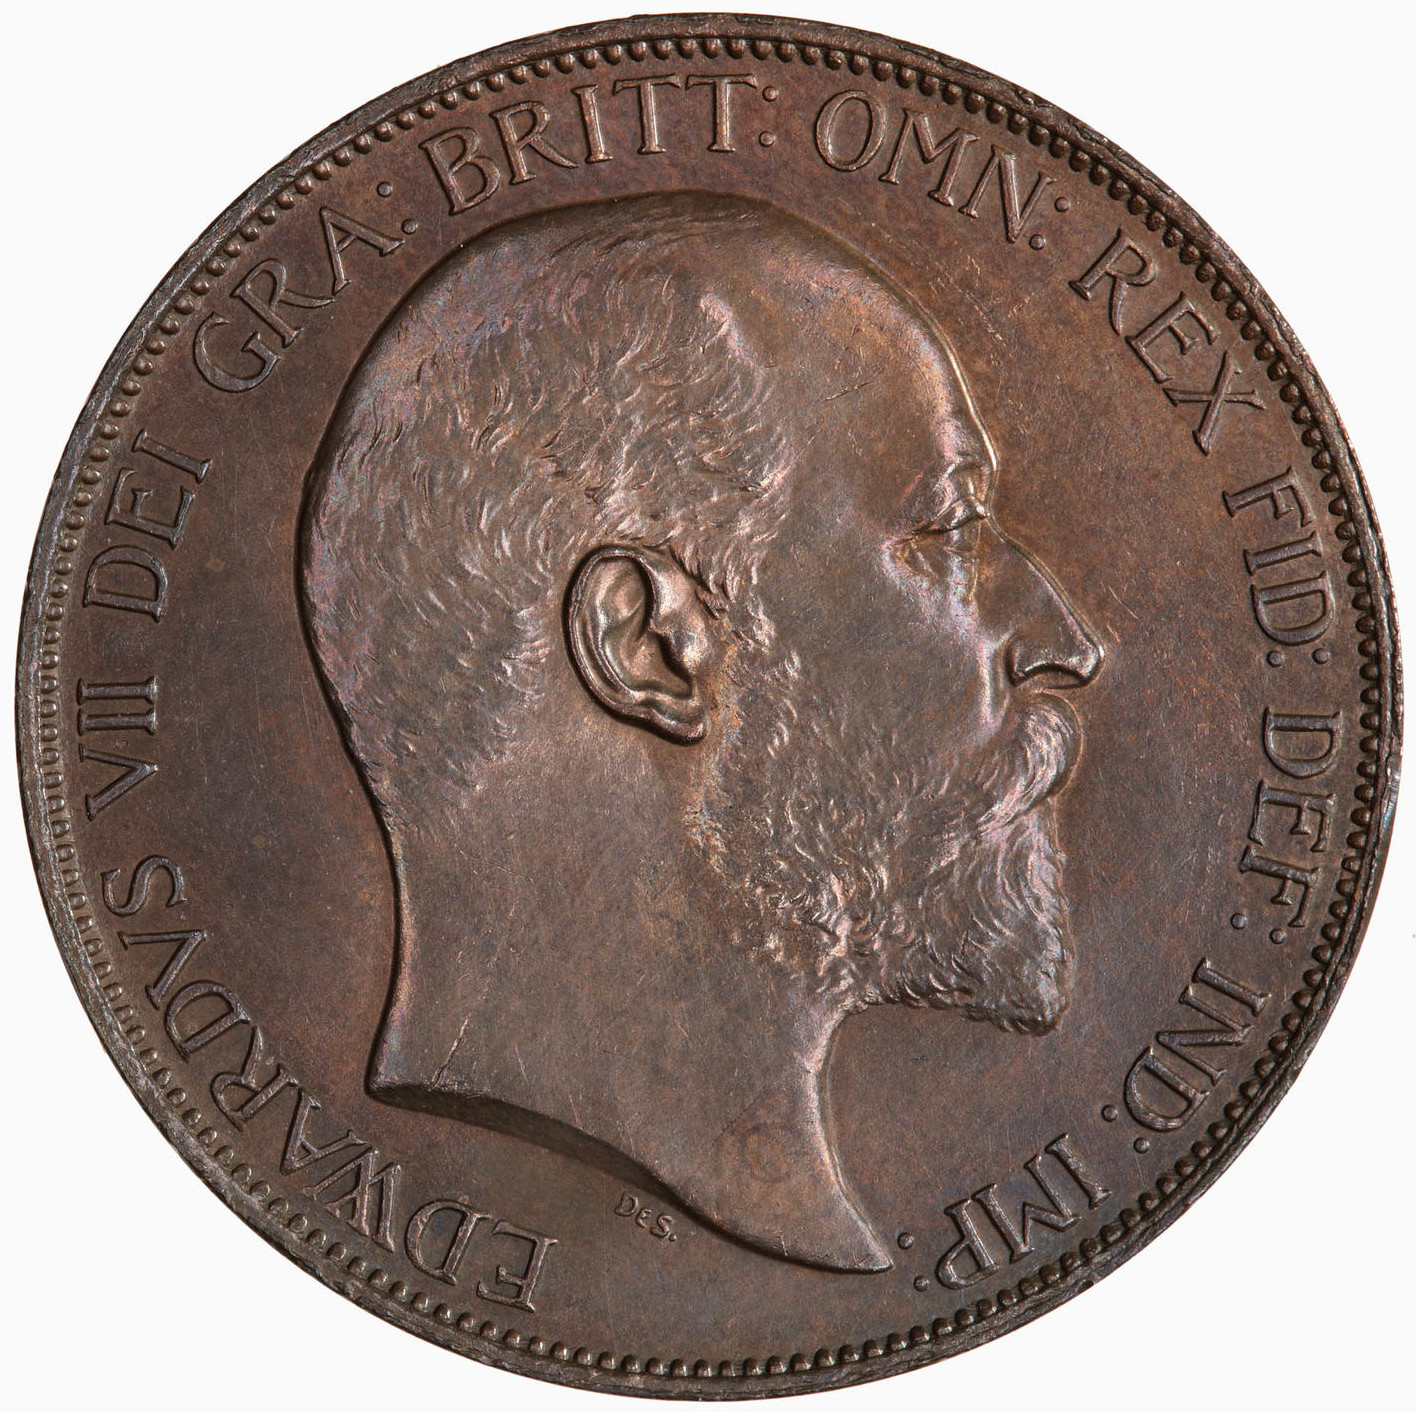 Penny (Pre-decimal): Photo Coin - Penny, Edward VII, Great Britain, 1902